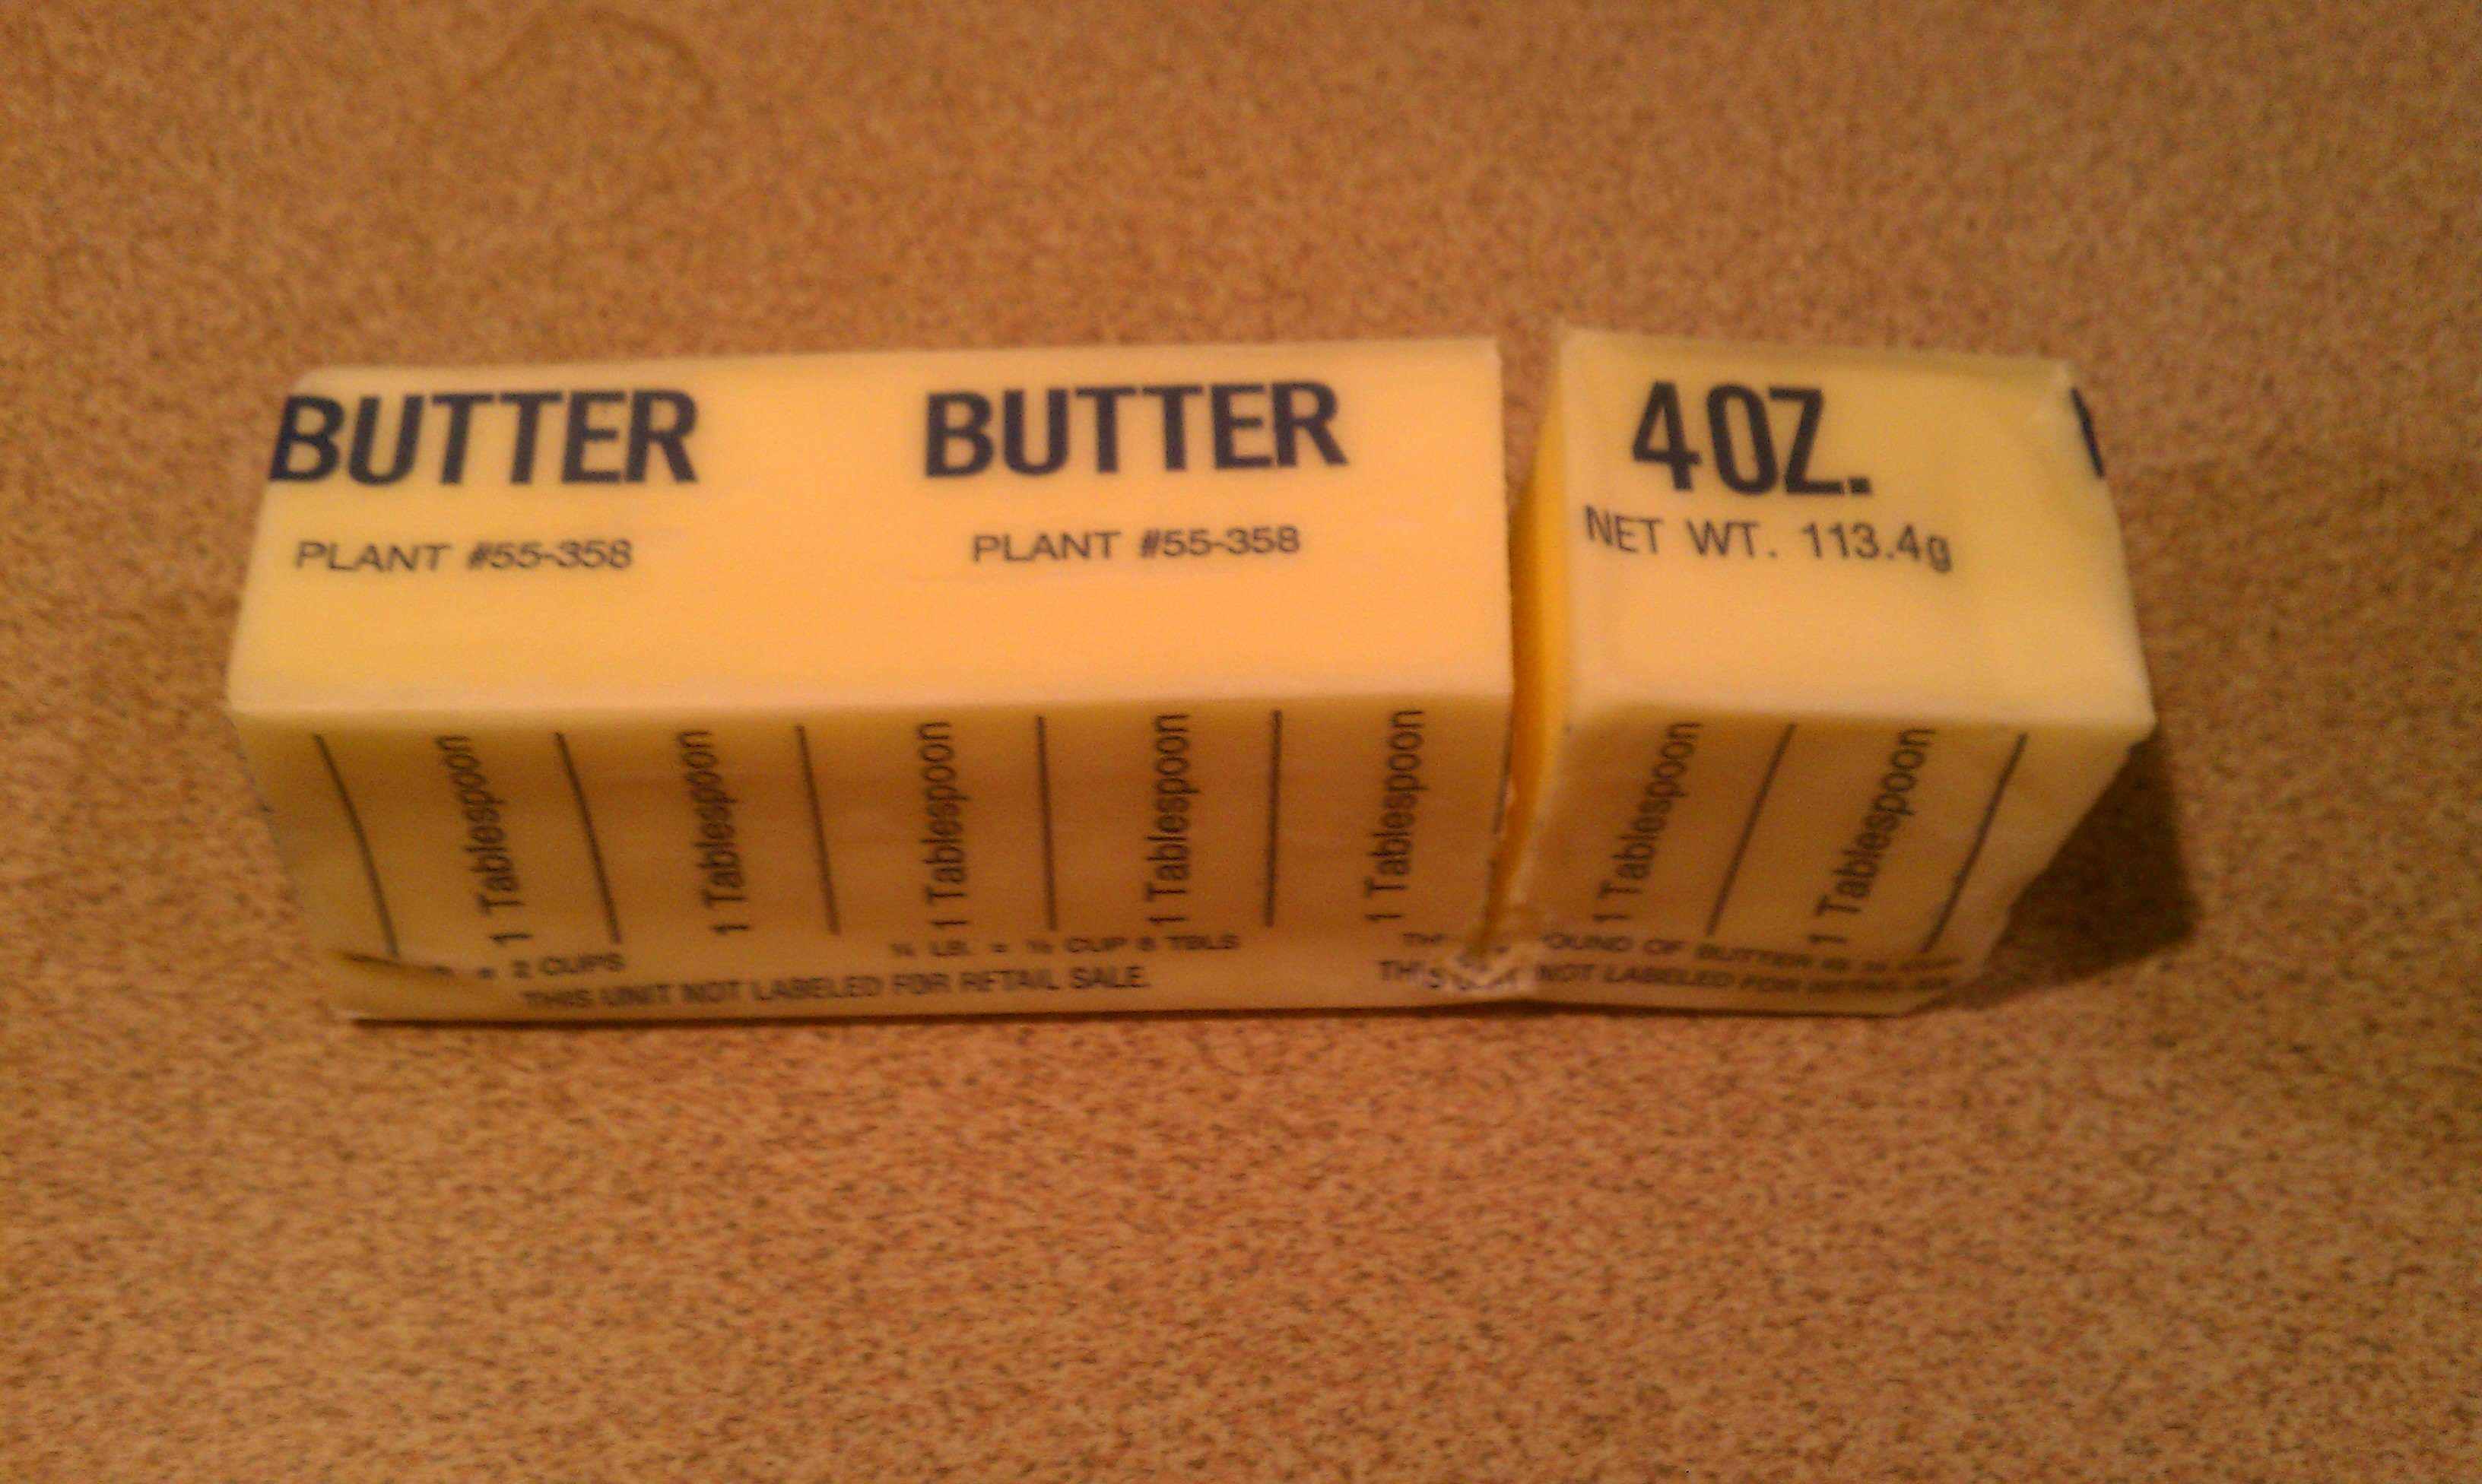 [one stick of butter] - 28 images - what does one stick of ...